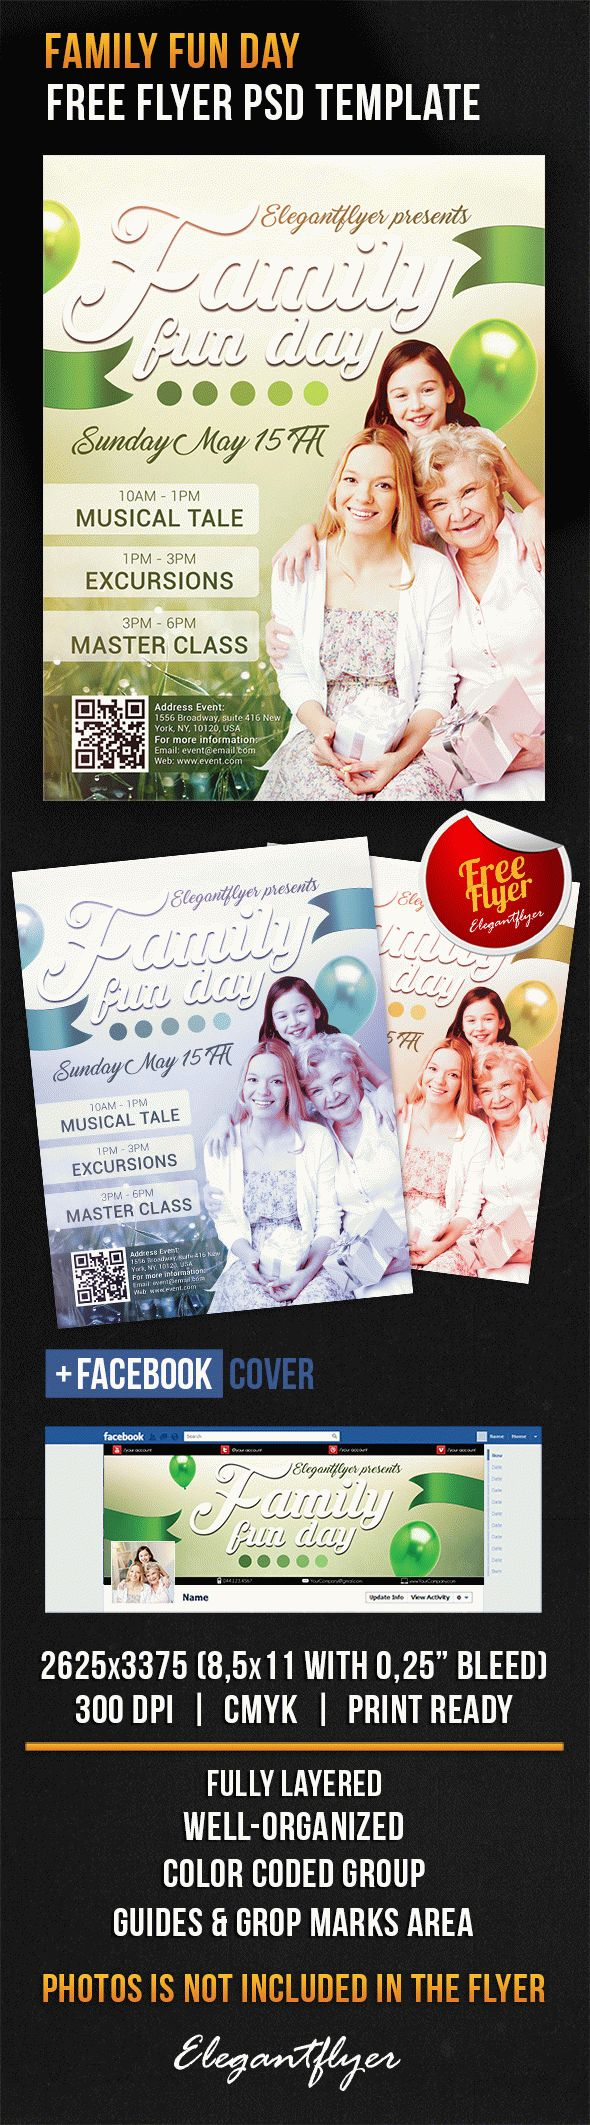 Family fun day free flyer psd template by elegantflyer for Fun brochure templates